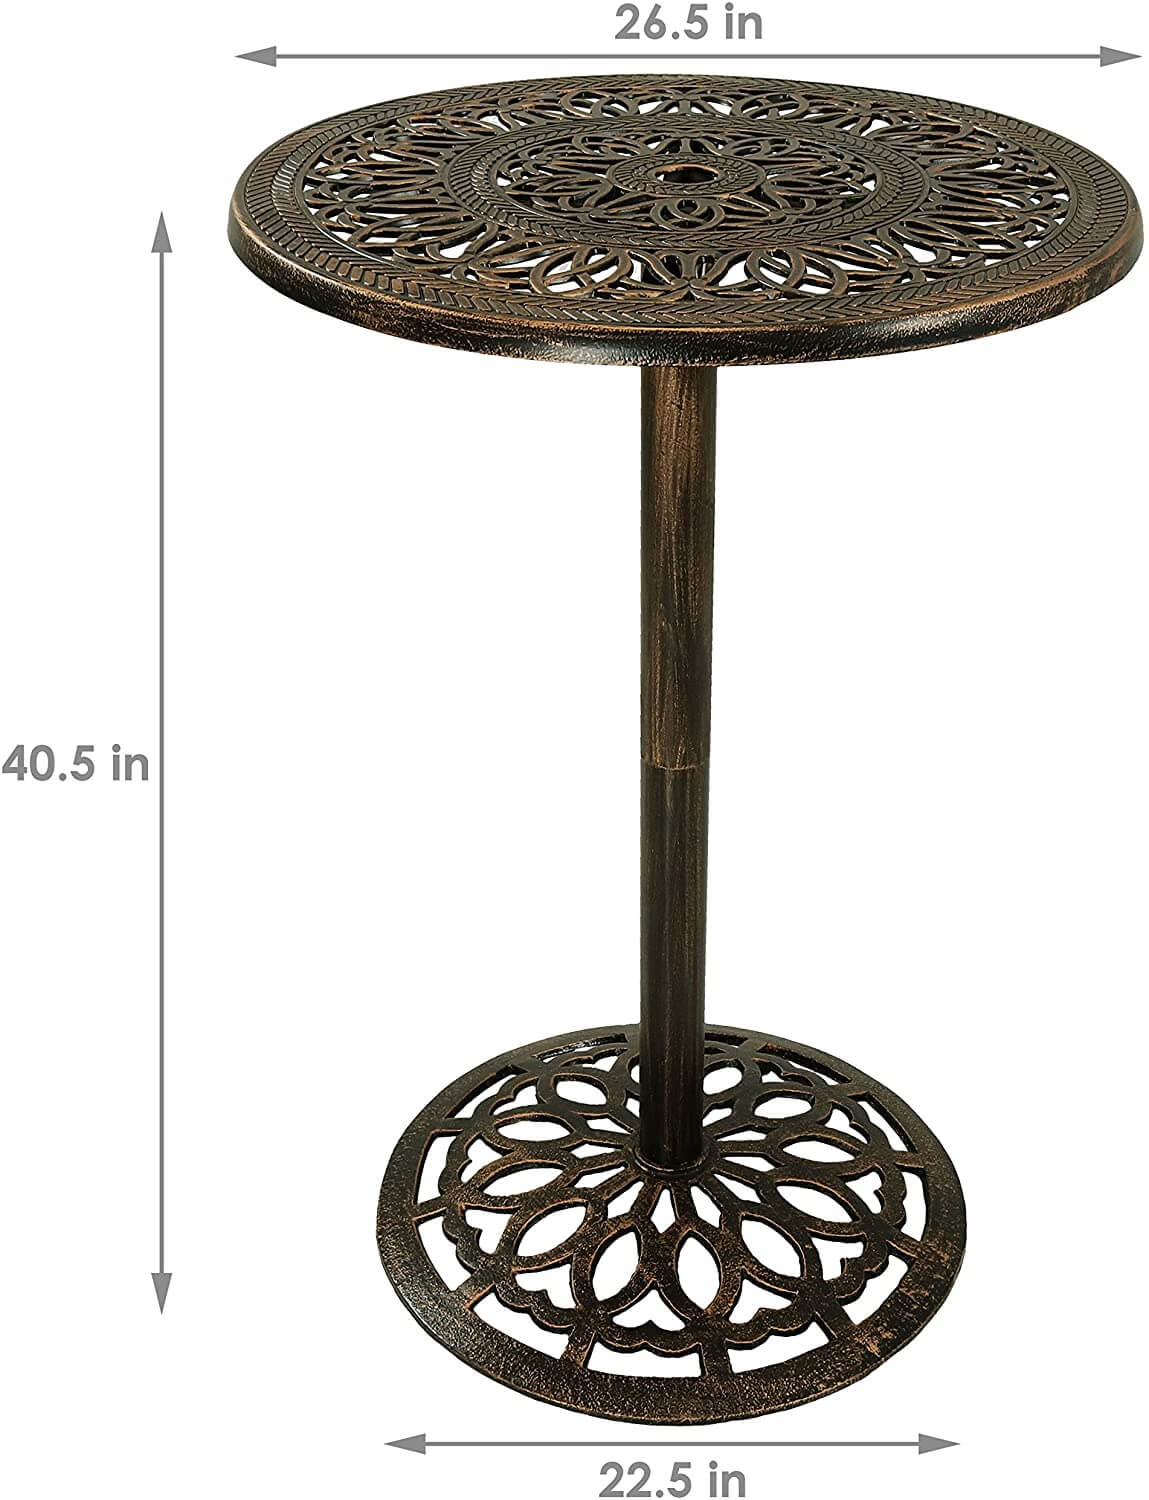 THE SIZE OF BAR HEIGHT PATIO TABLE